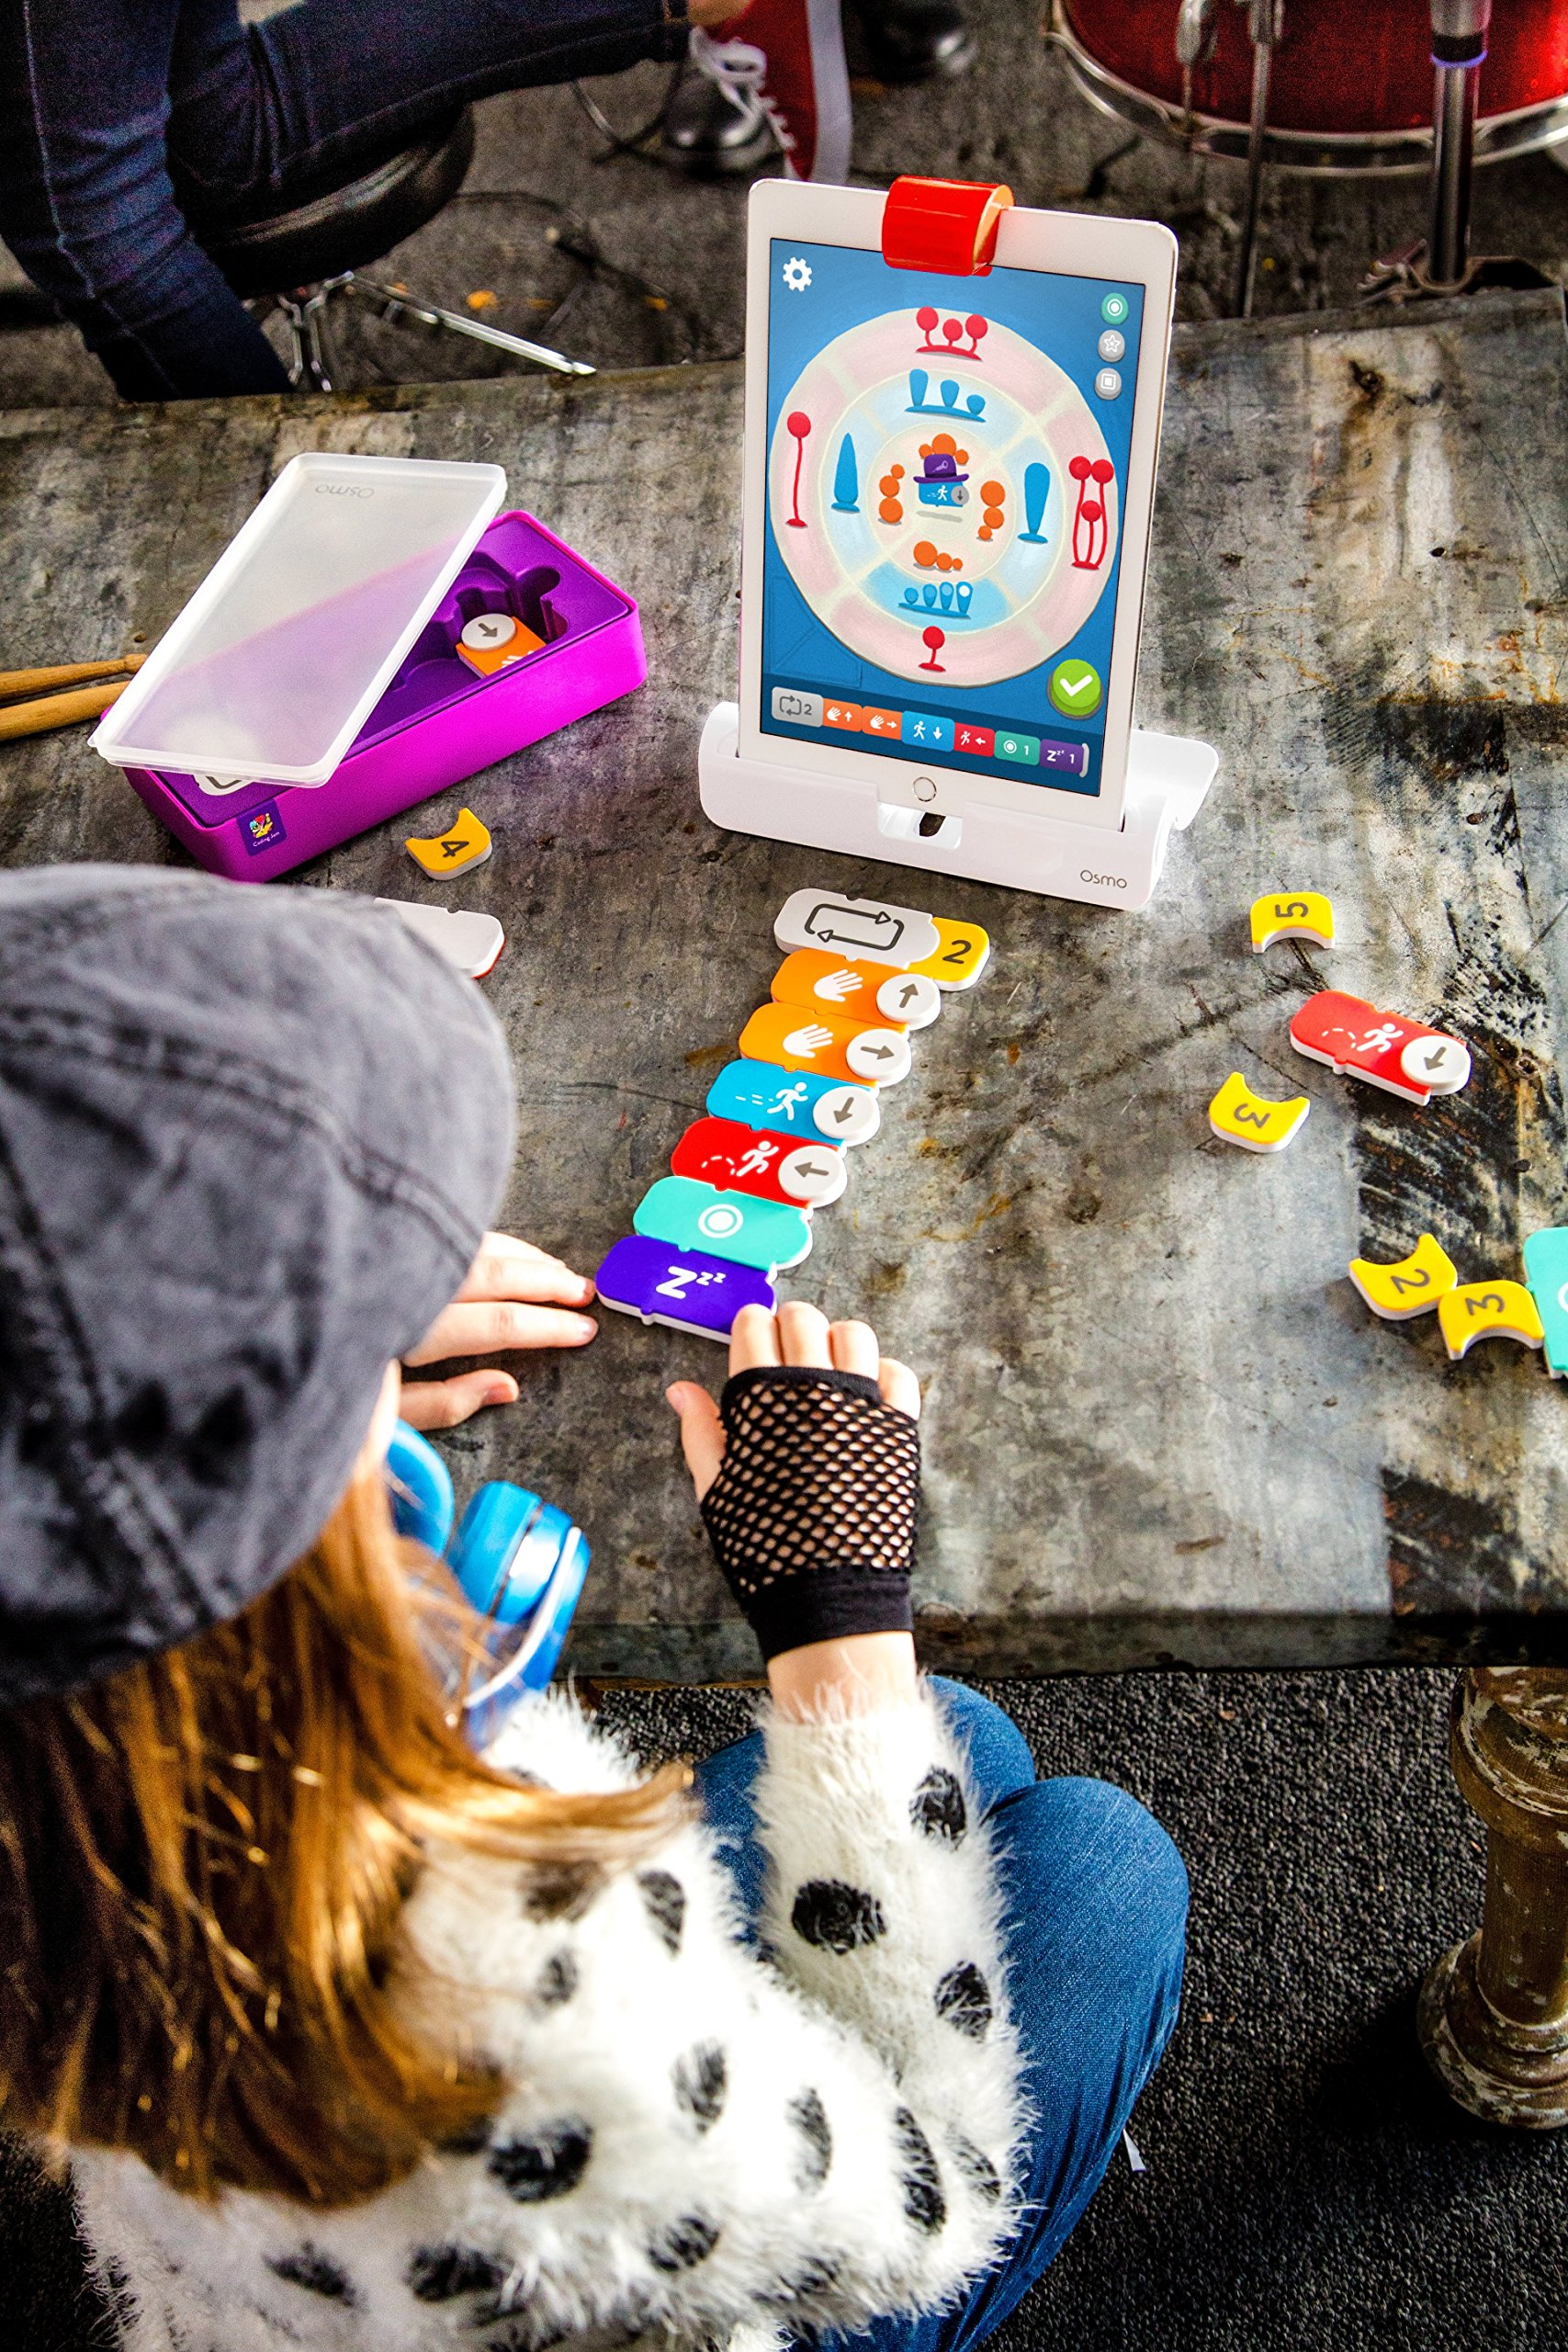 Osmo - Coding Jam - Ages 6-12 - Music Creation, Coding & Problem Solving - For iPad and Fire Tablet (Osmo Base Required) by Osmo (Image #9)